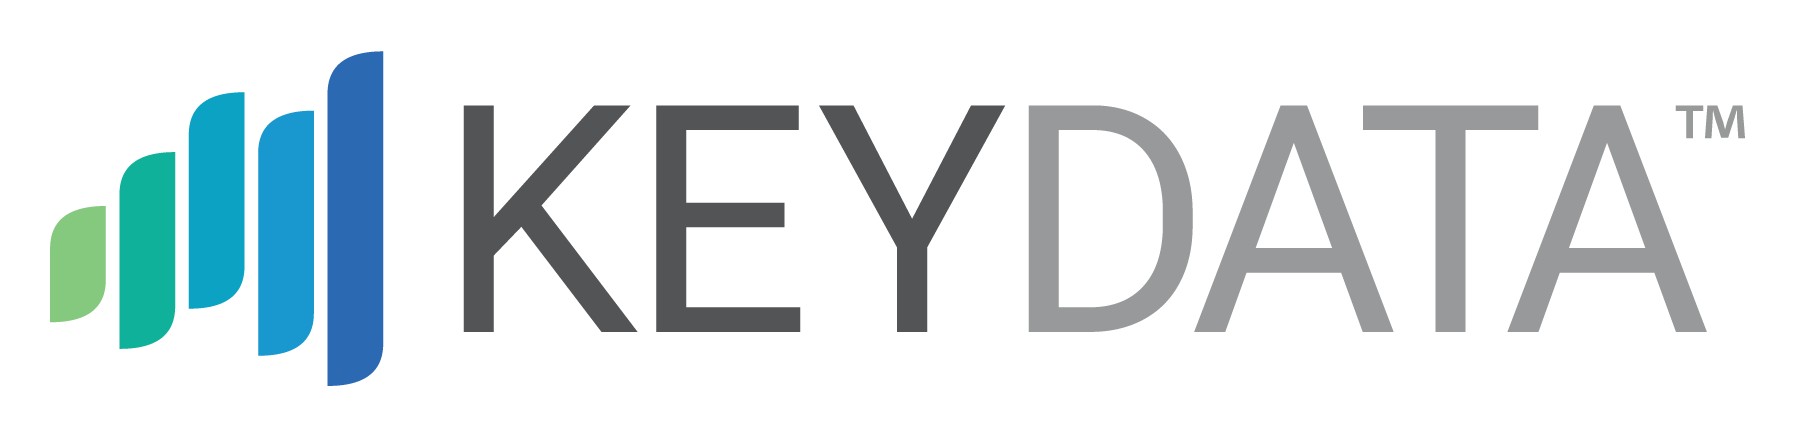 Key Data Dashboard Logo.png